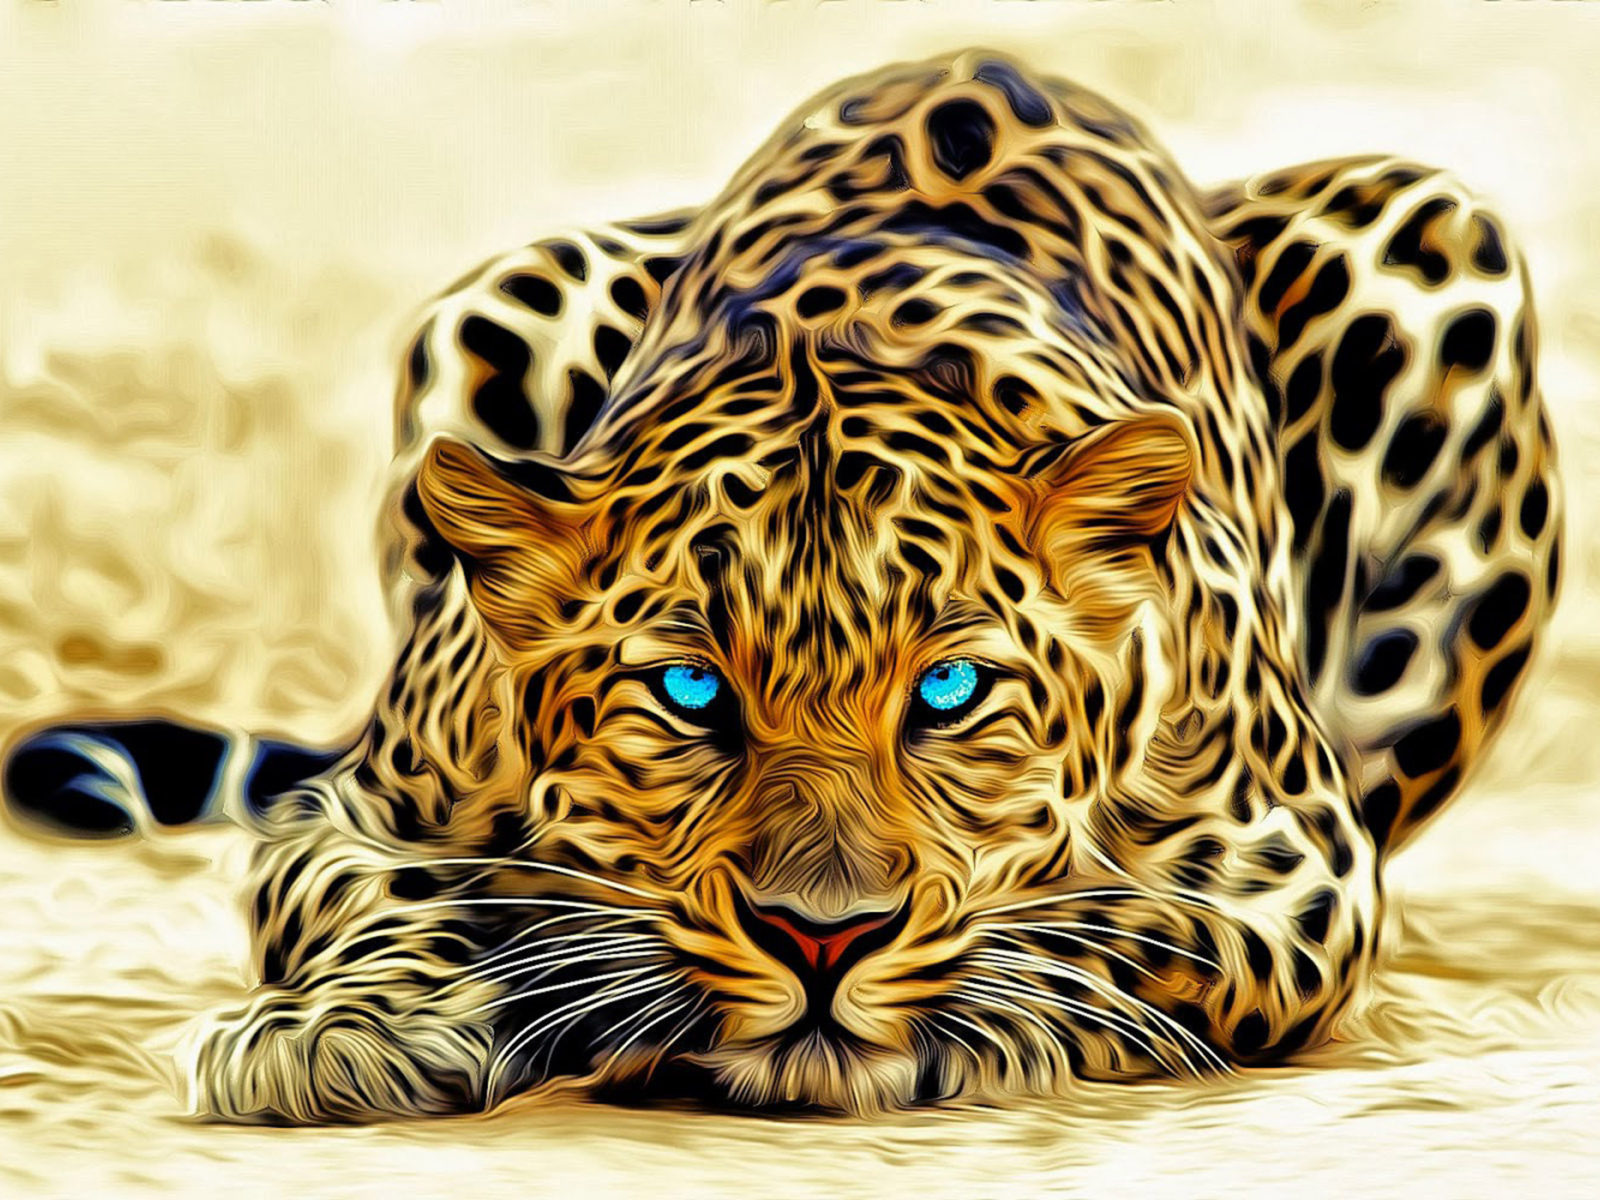 3d Snow Wallpaper For Android Leopard Art Abstract 3d Wallpaper Hd 3840x2400